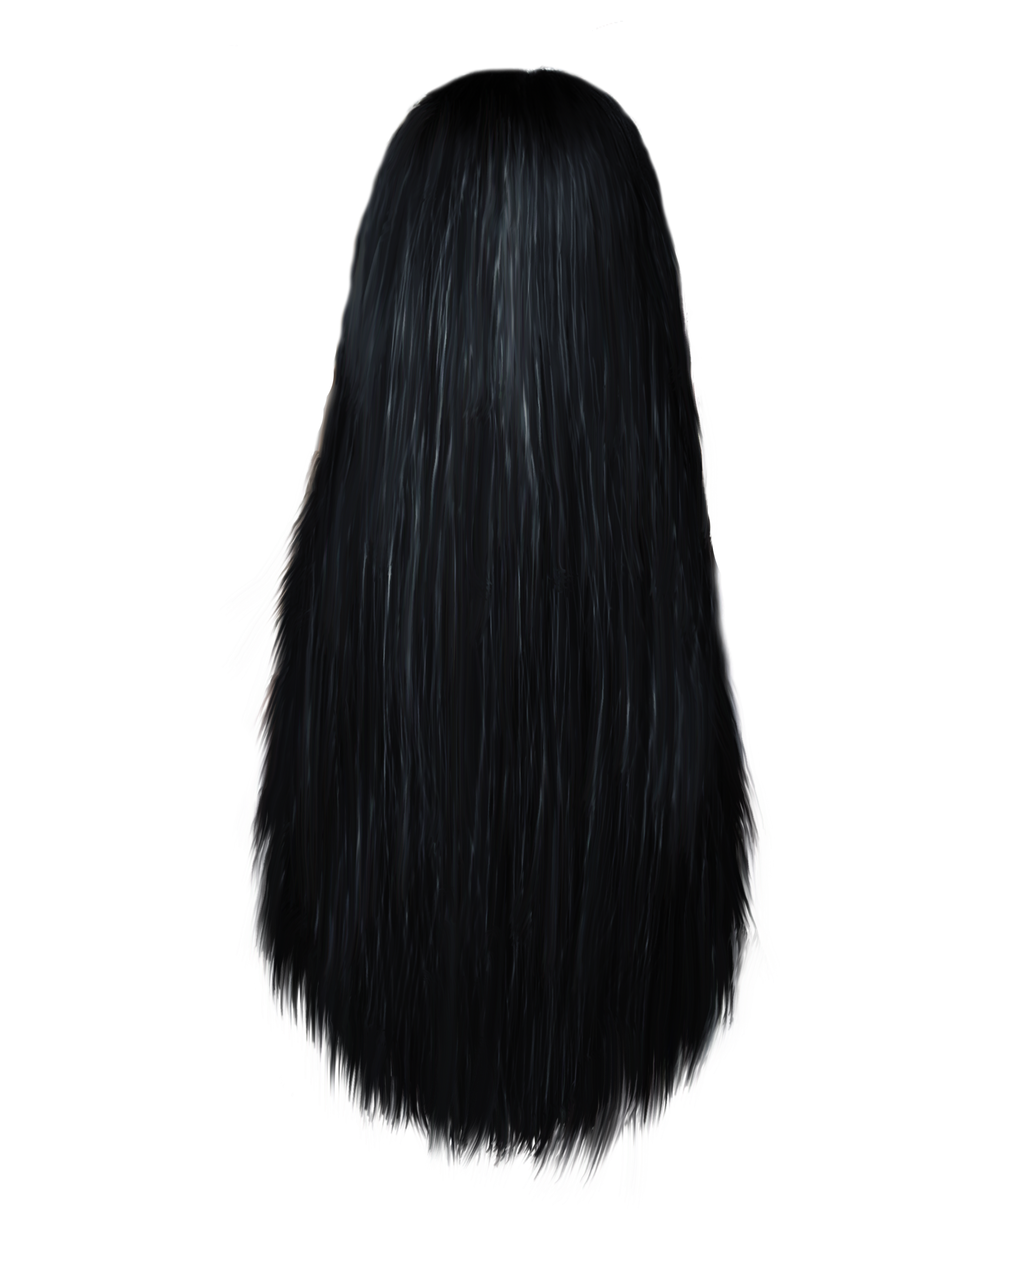 Hairstyle Png : png_hair_16_by_moonglowlilly-d6mliac.png